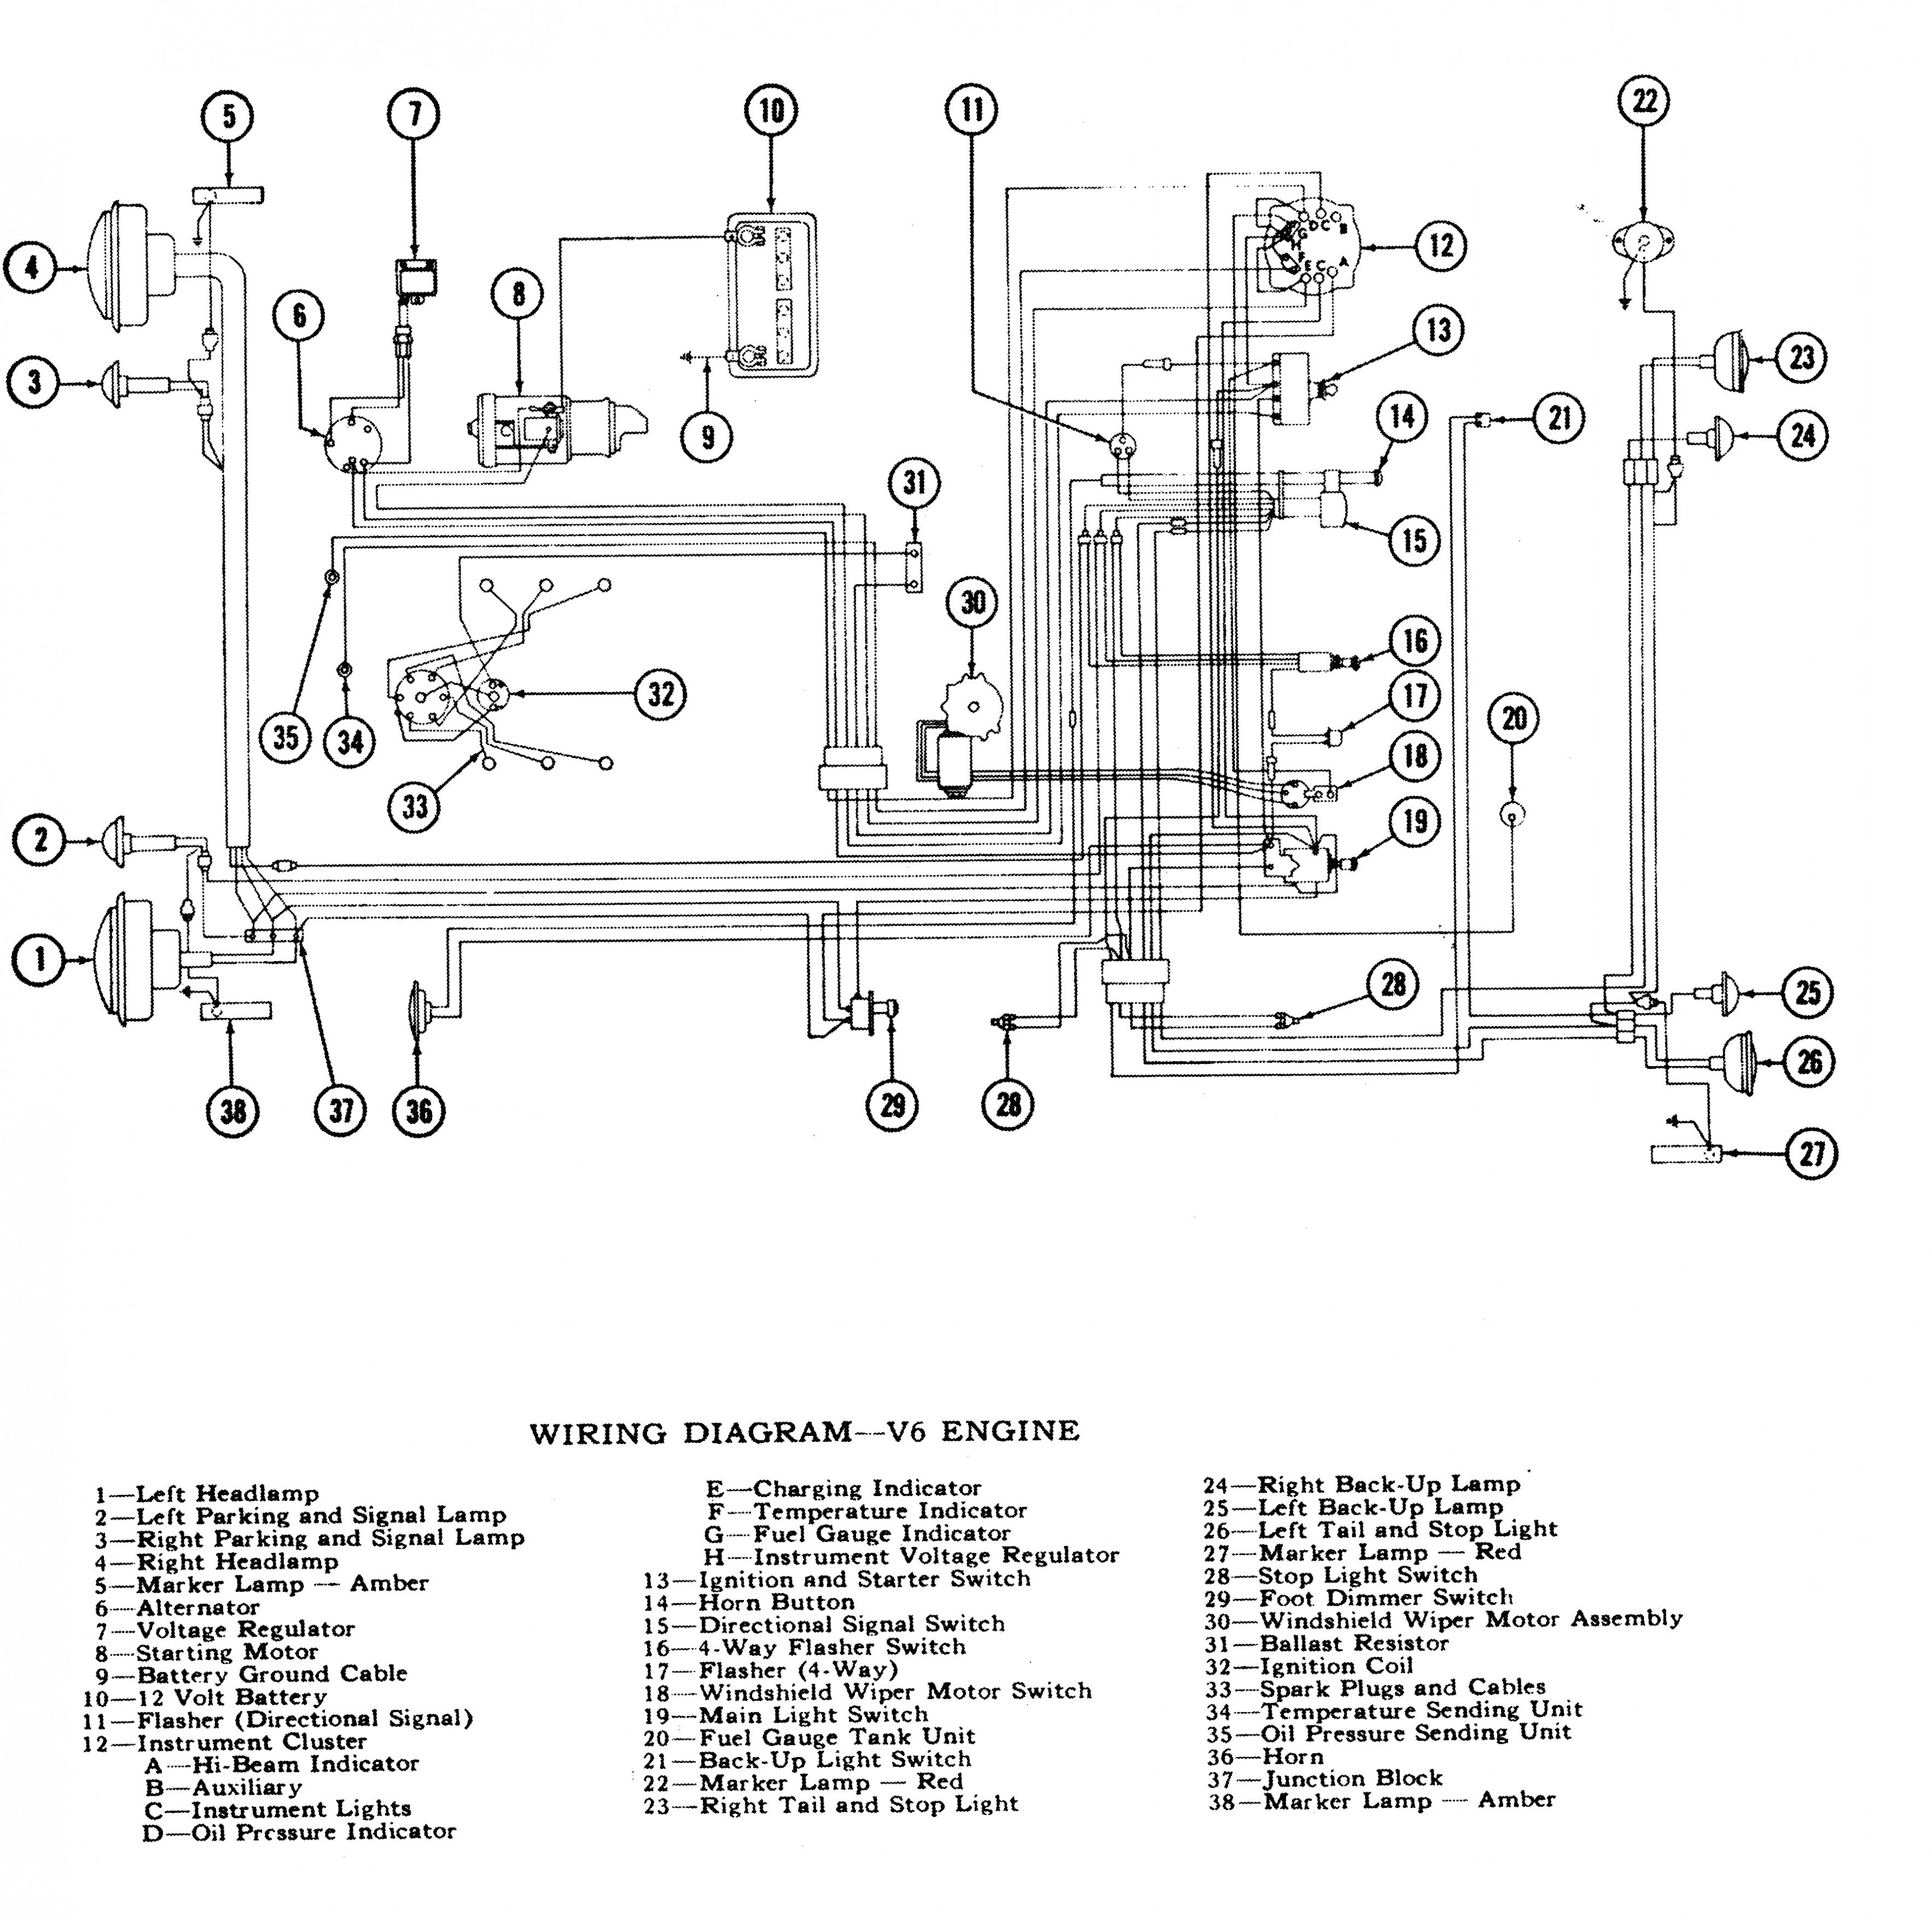 Gage Rr Spreadsheet For John Deere Wiring Diagram